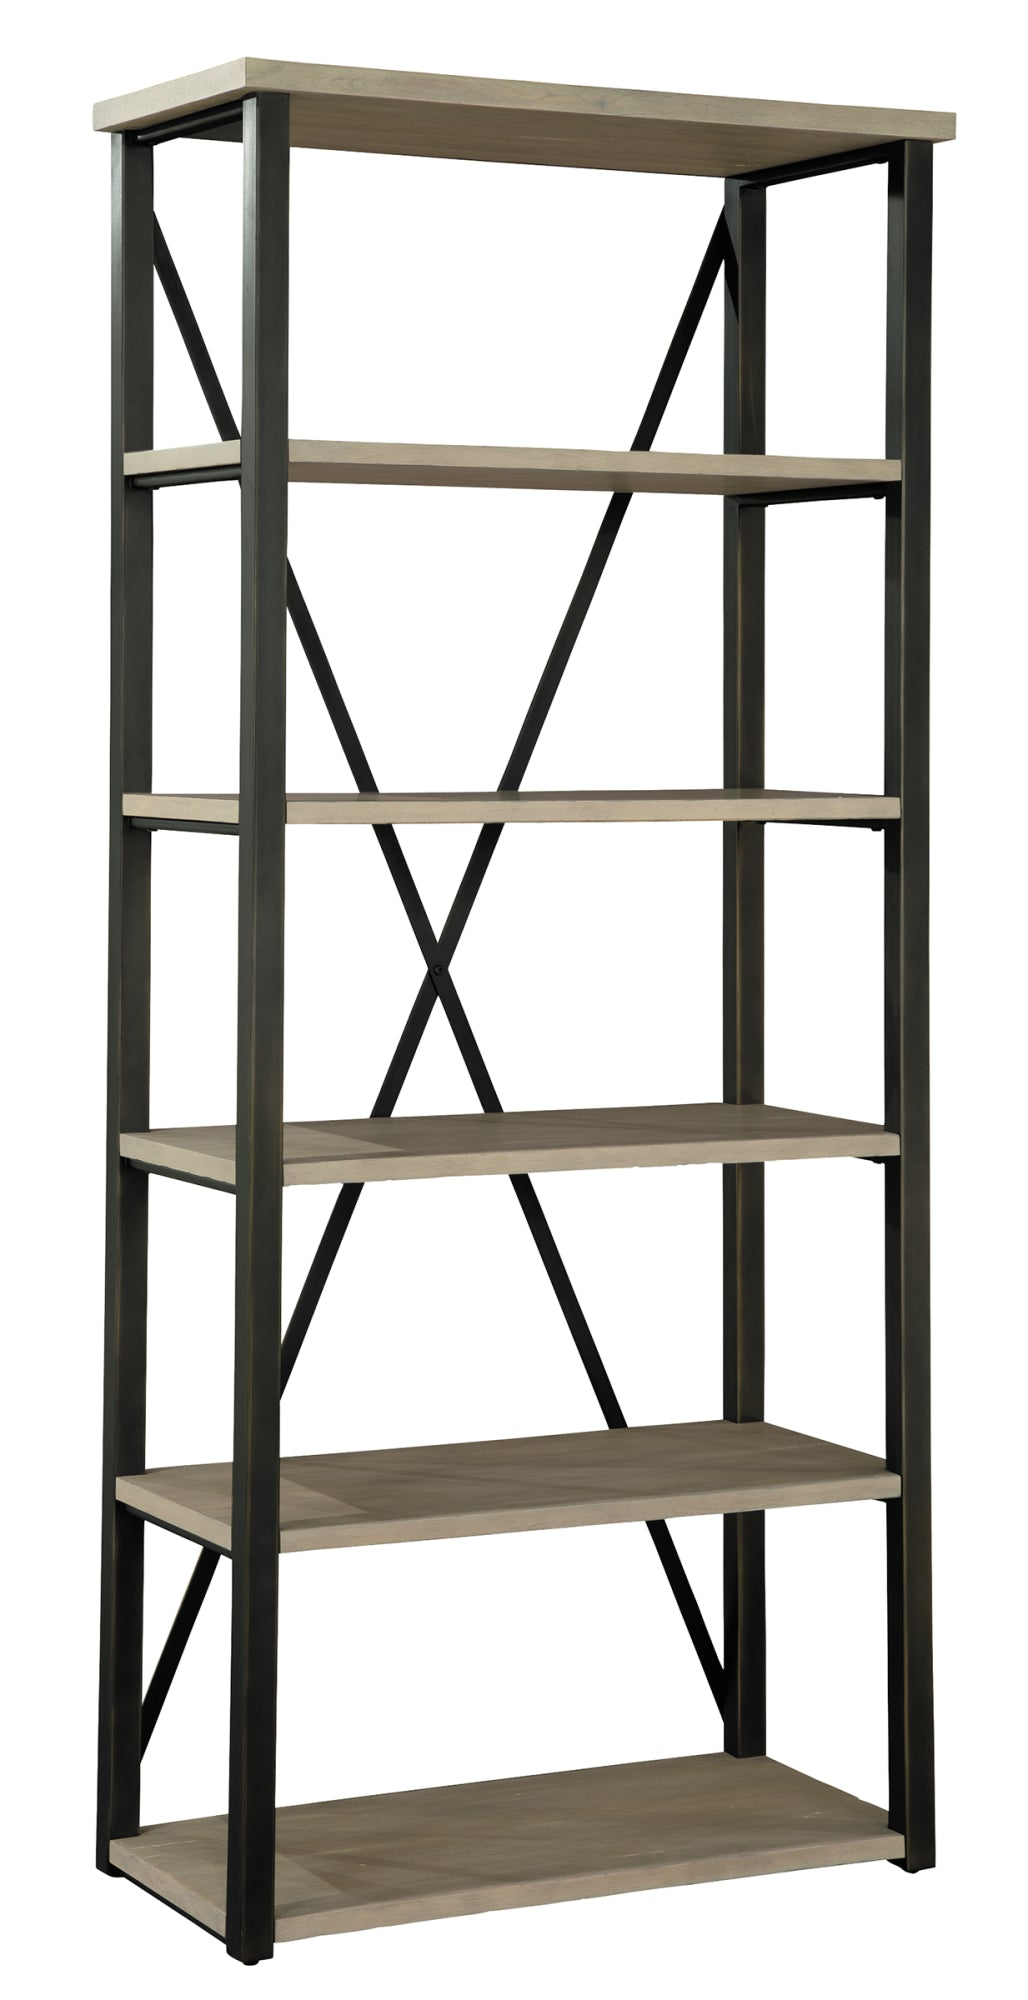 Hekman Office At Home KC Bookcase 28160 - Curios And More